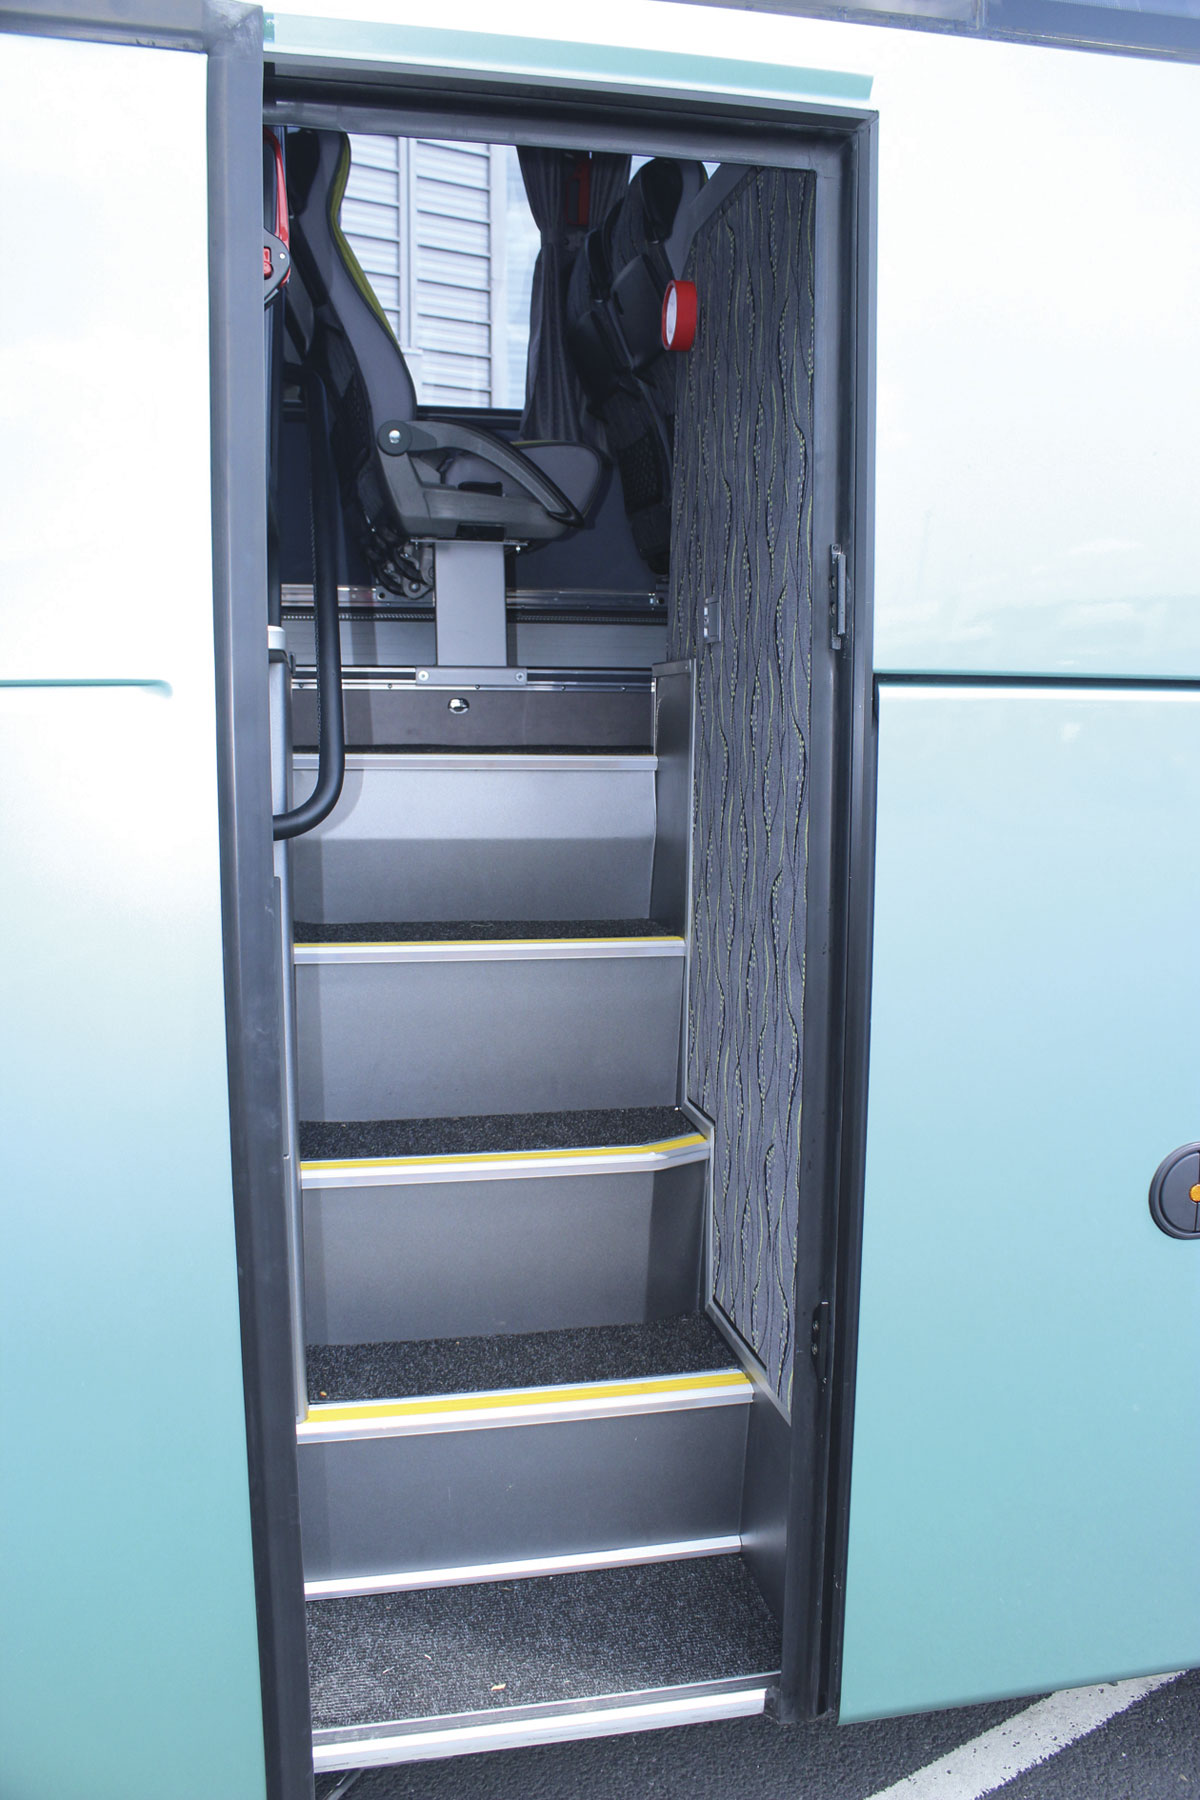 Five steps take you up to the aisle of the 13.8m Barbi HDH, with the toilet compartment on the right